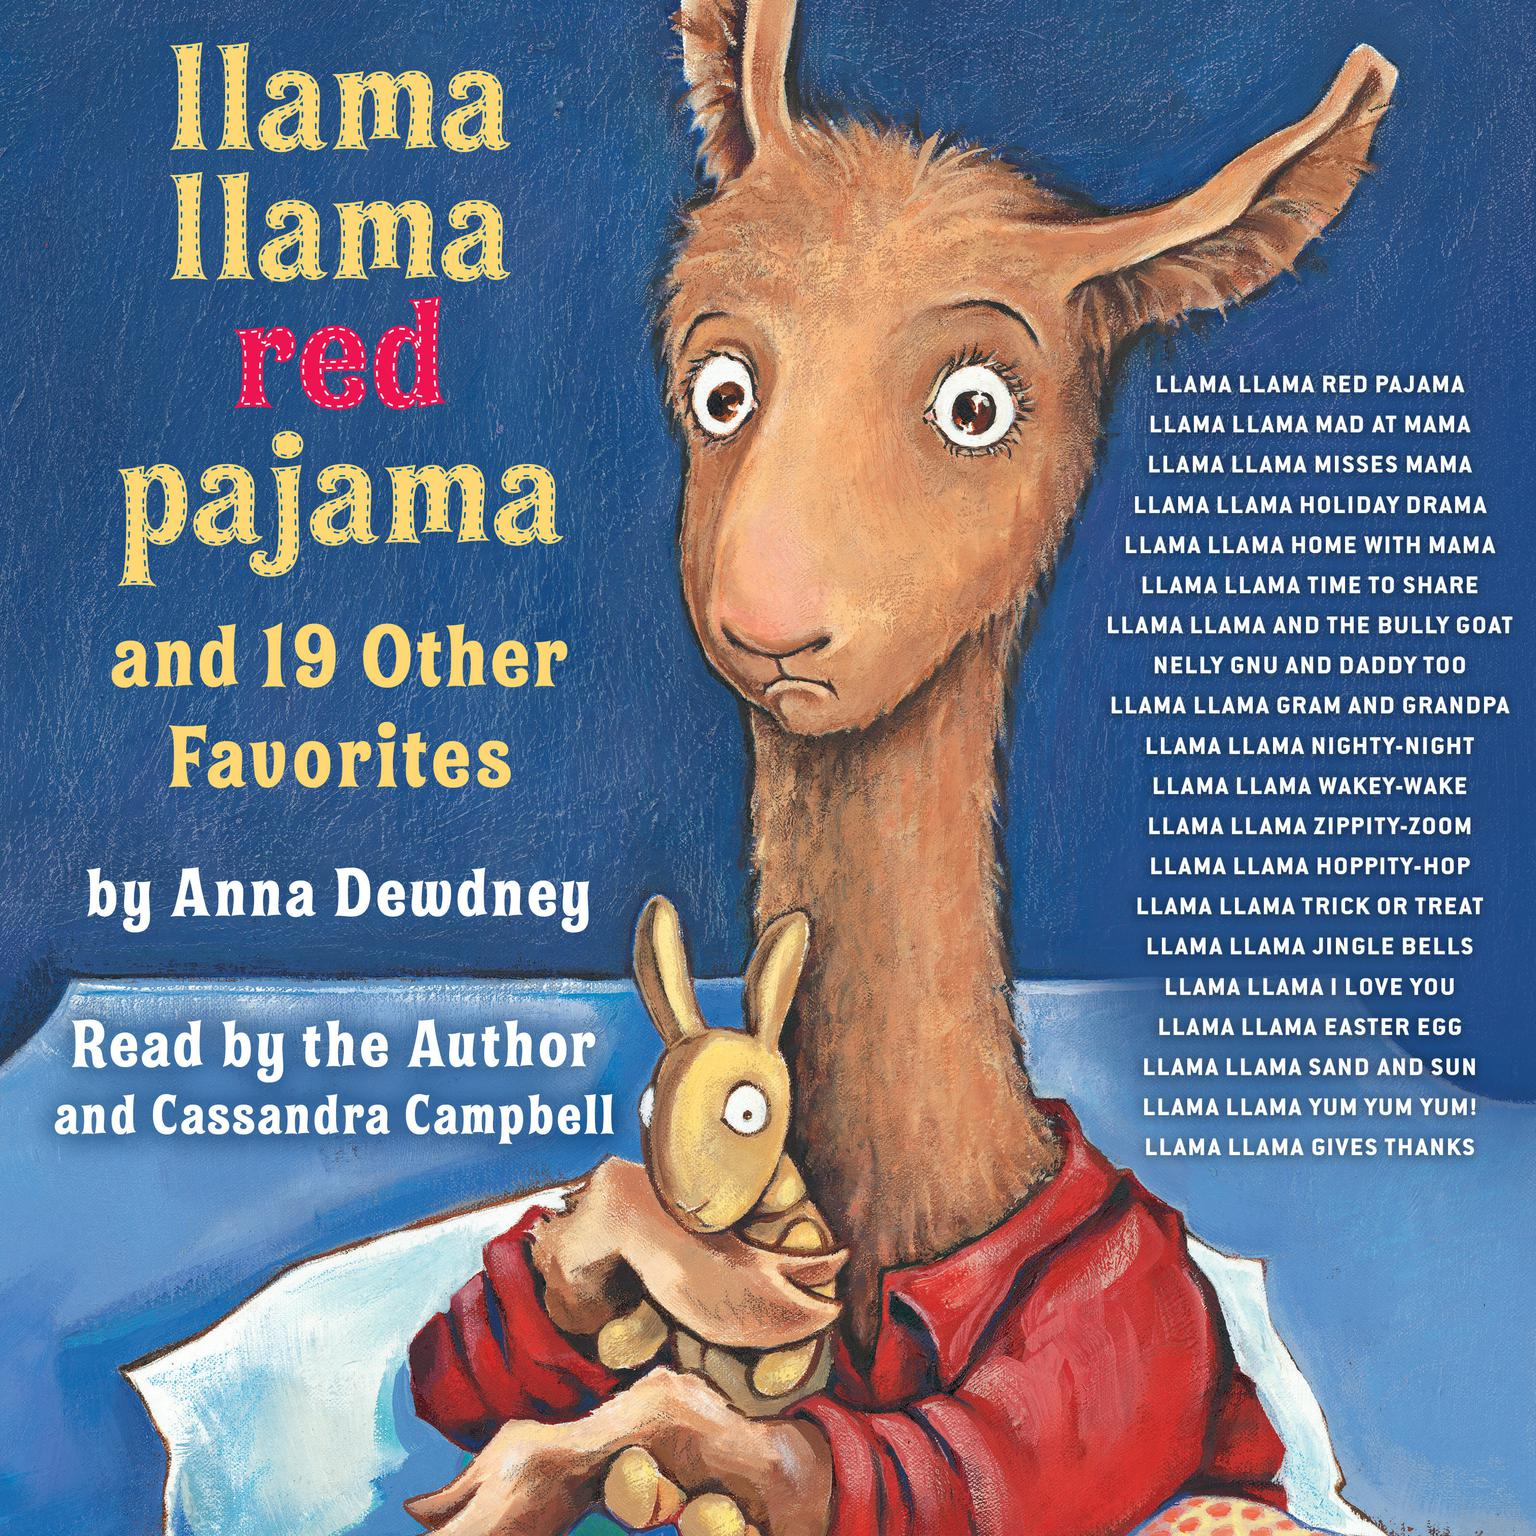 Printable Llama Llama Red Pajama and 19 Other Favorites: Llama Llama Nighty-Night; Llama Llama Mad at Mama; Nelly Gnu and Daddy Too; and more! Audiobook Cover Art